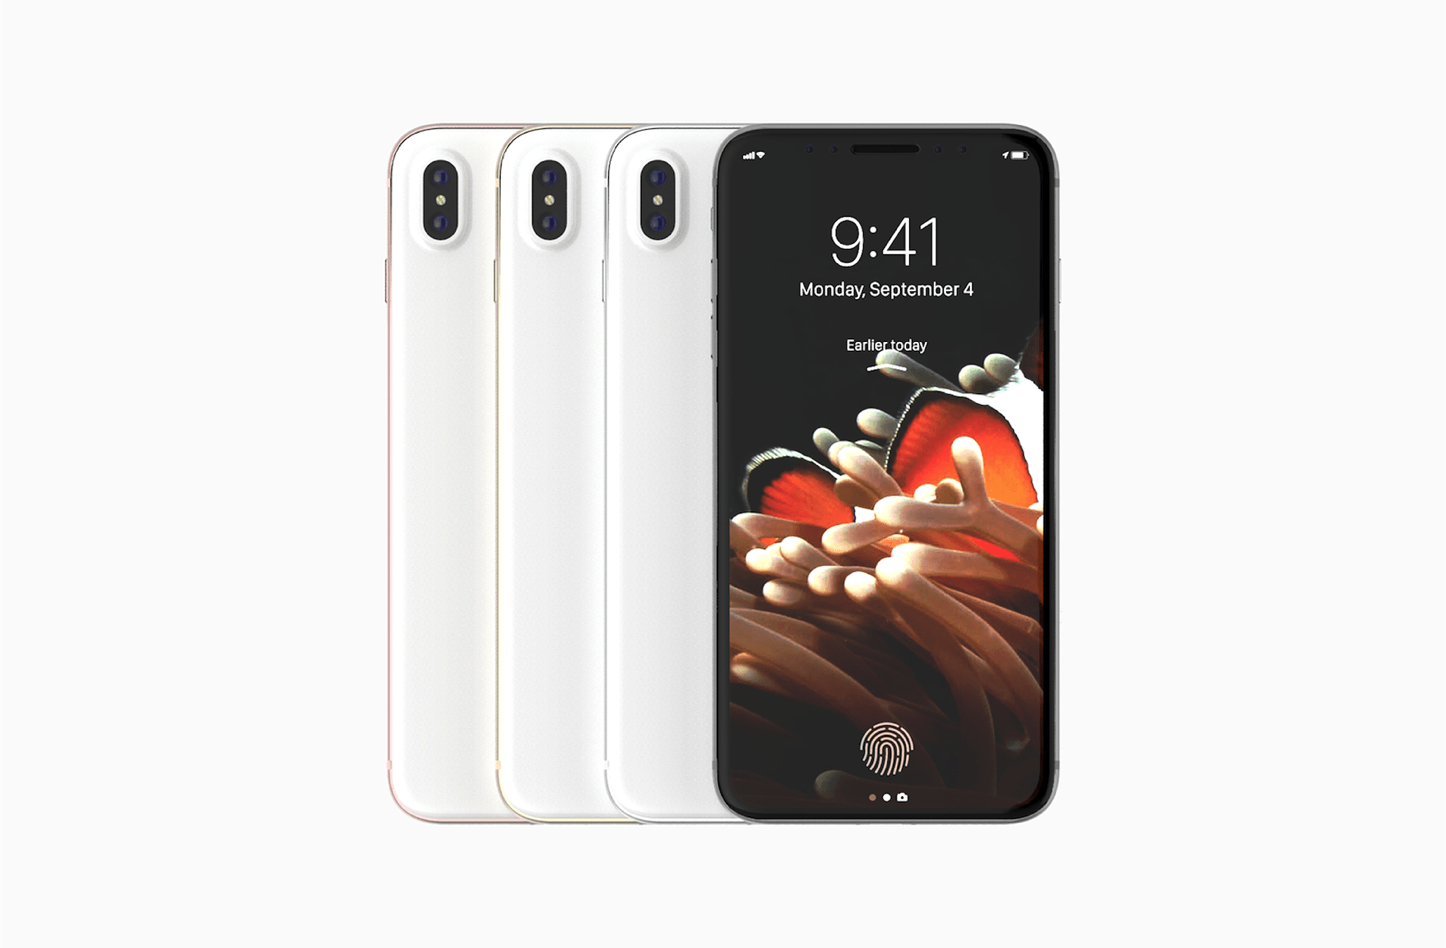 iphone-8-hero-images-concept-7.png